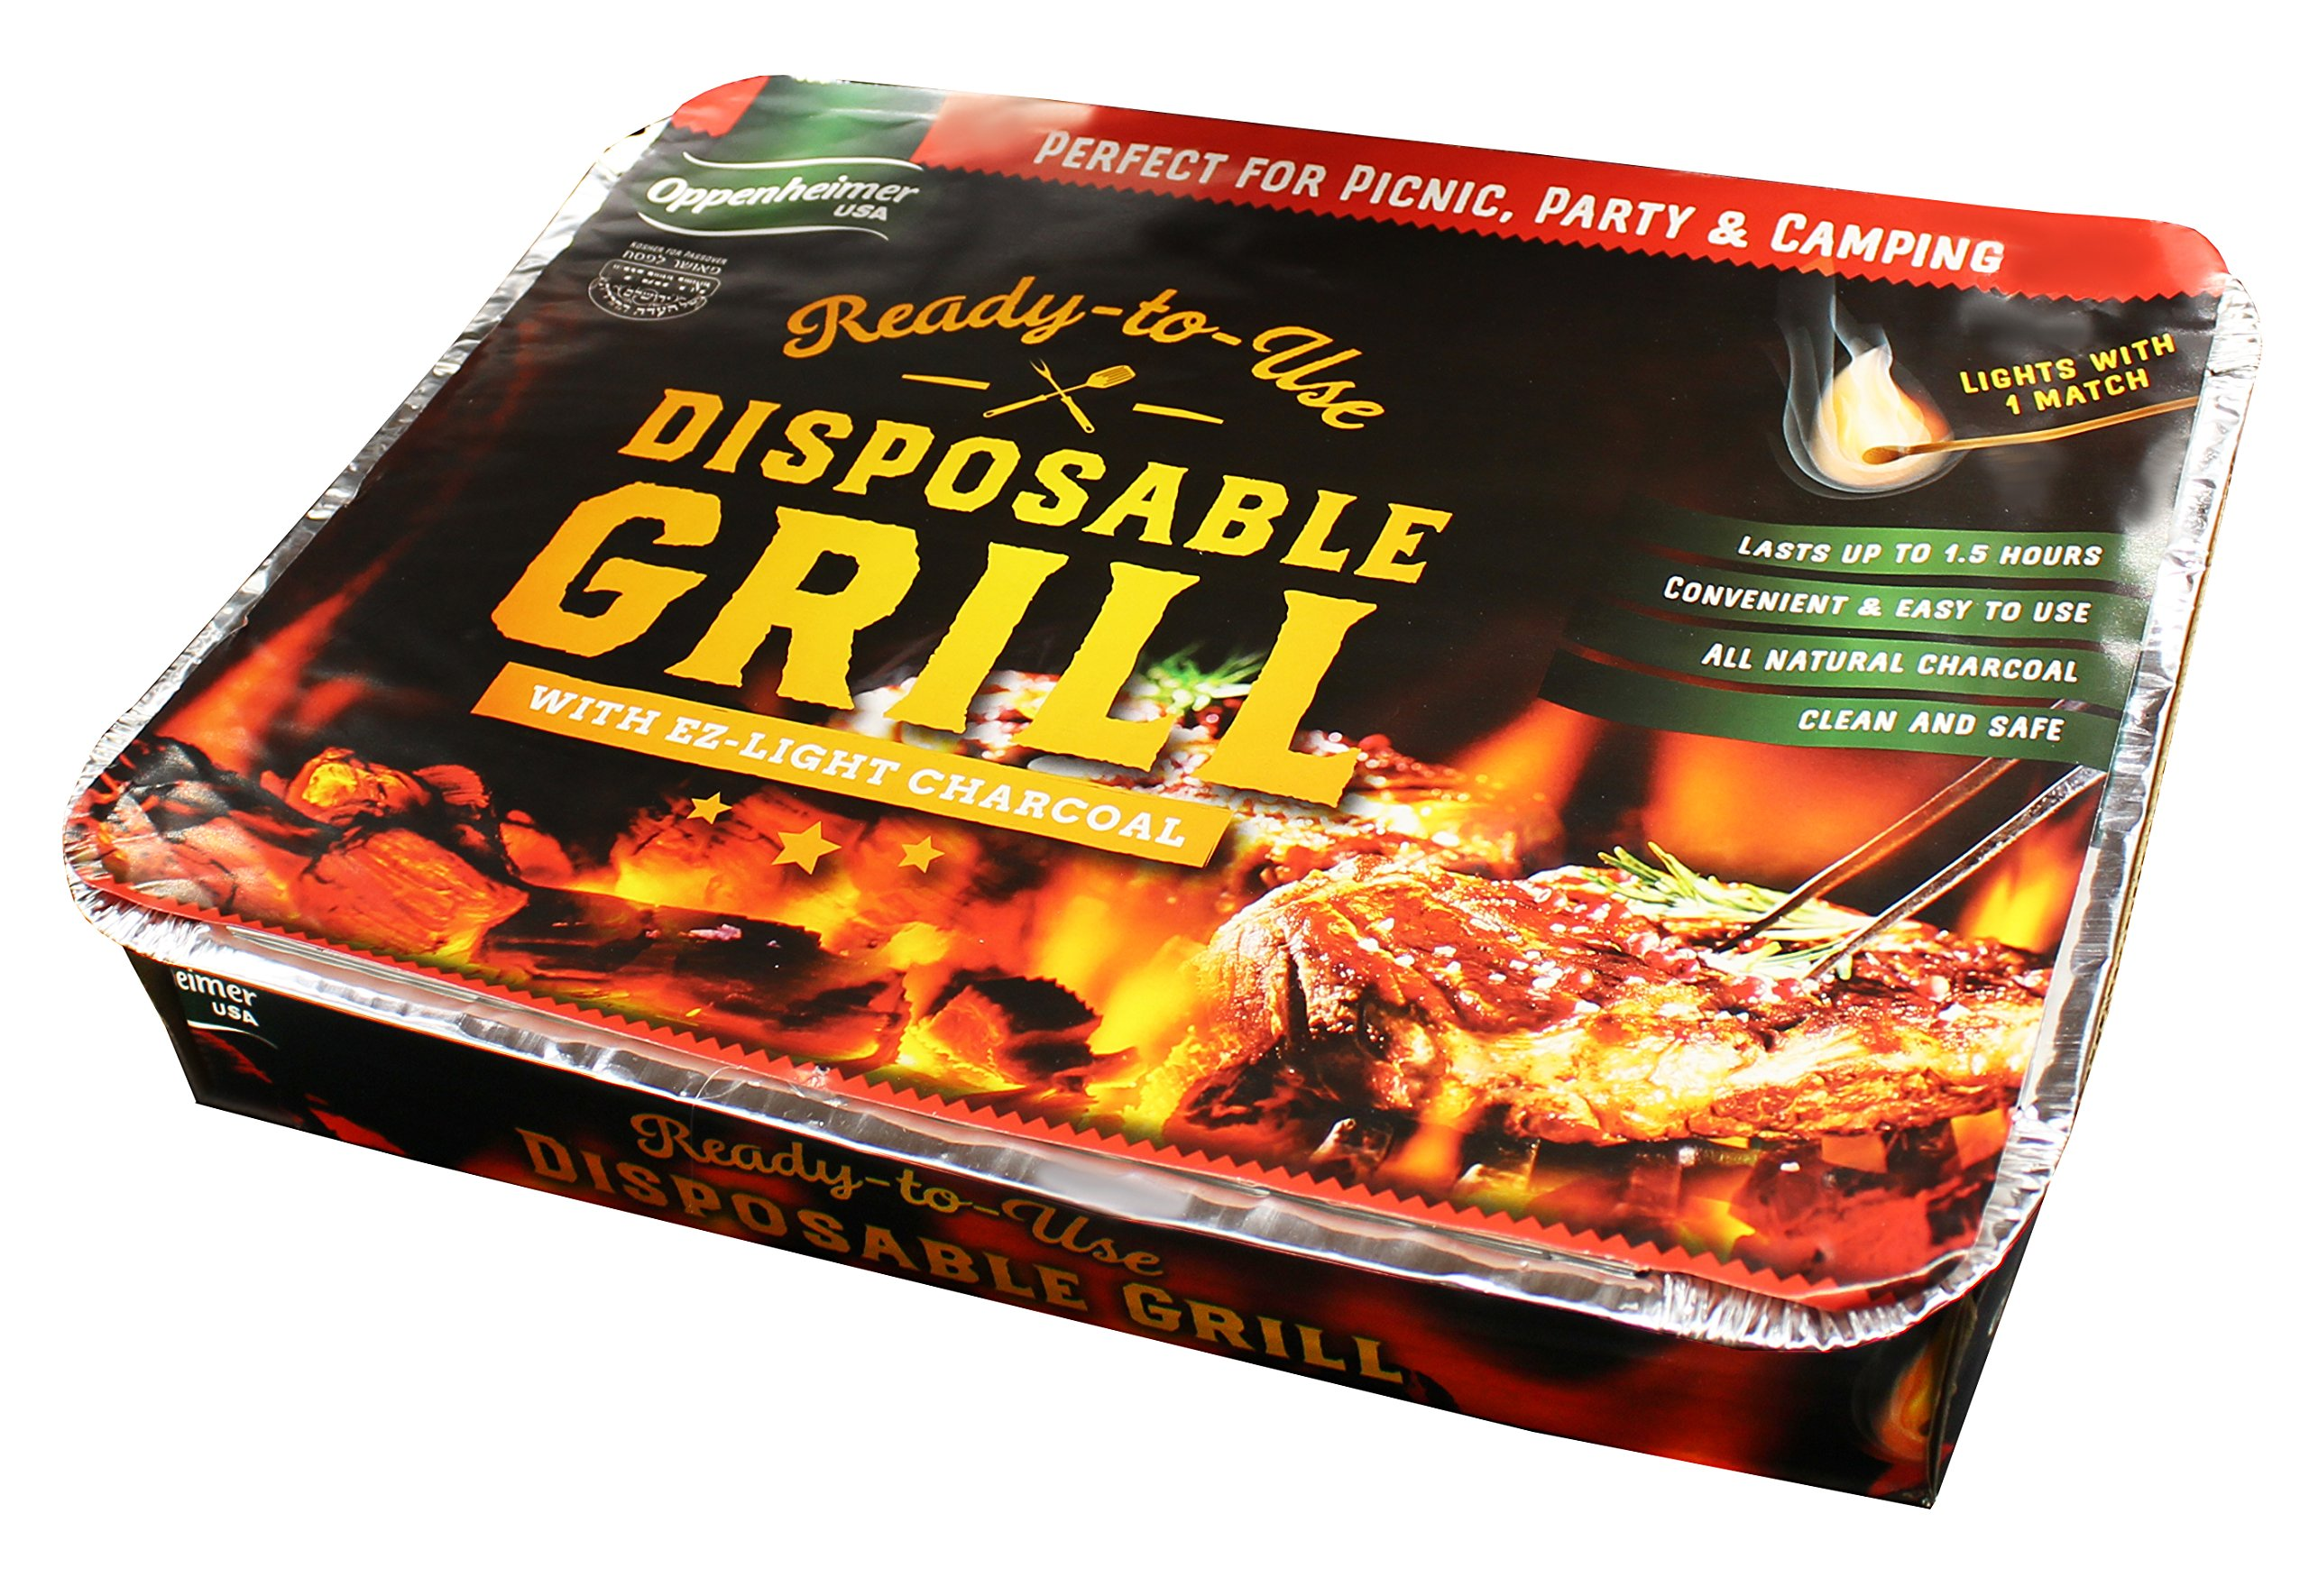 Disposable Charcoal Grill On-the-Go Ready to Use EZ To Light Kosher By Oppenheimer USA